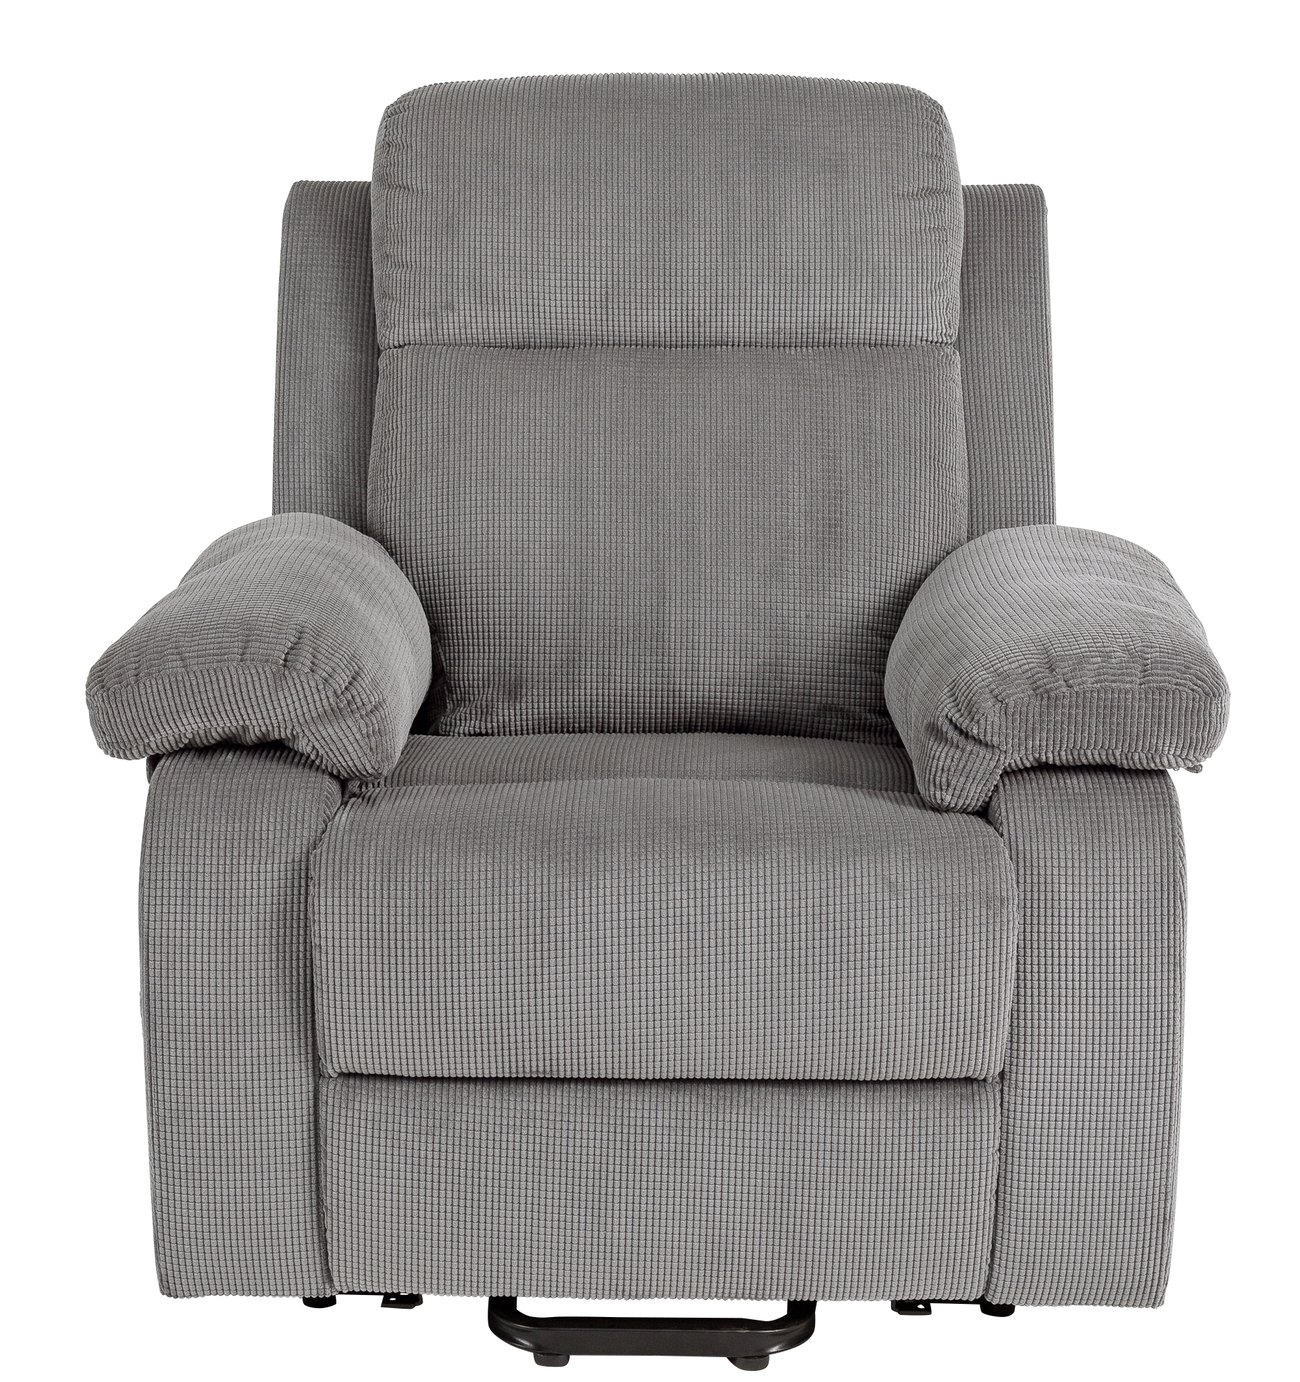 Power Riser Recliner Chair with Dual Motor u2013 Natural  sc 1 st  Argos & Buy Power Riser Recliner Chair with Dual Motor u2013 Natural at Argos ... islam-shia.org